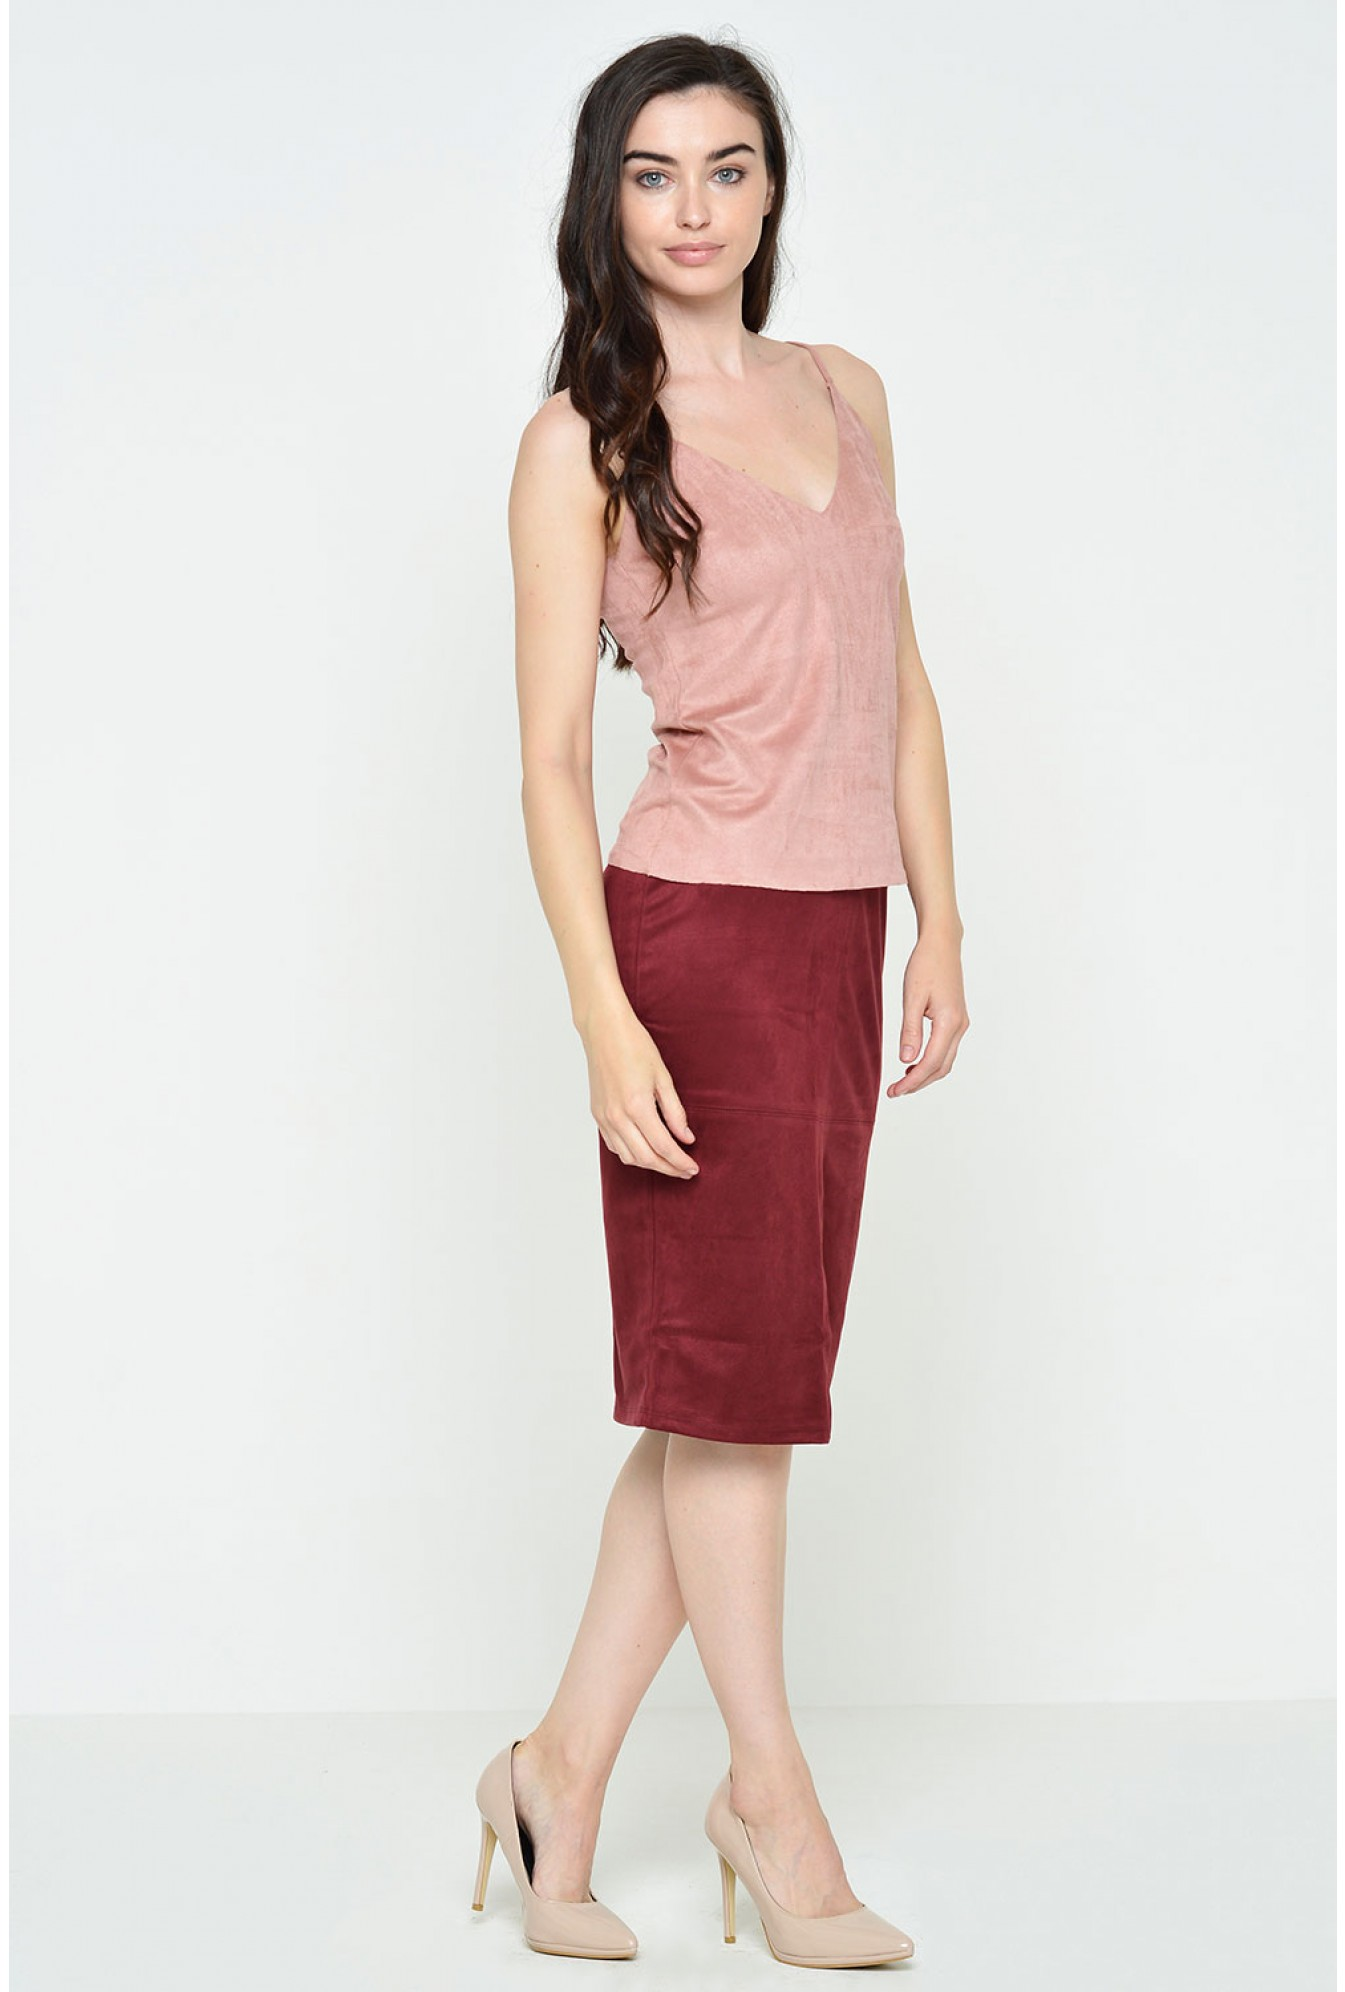 e26e511005 More Views. Tootie Suedette Cami Top in Dusty Pink. Glamorous